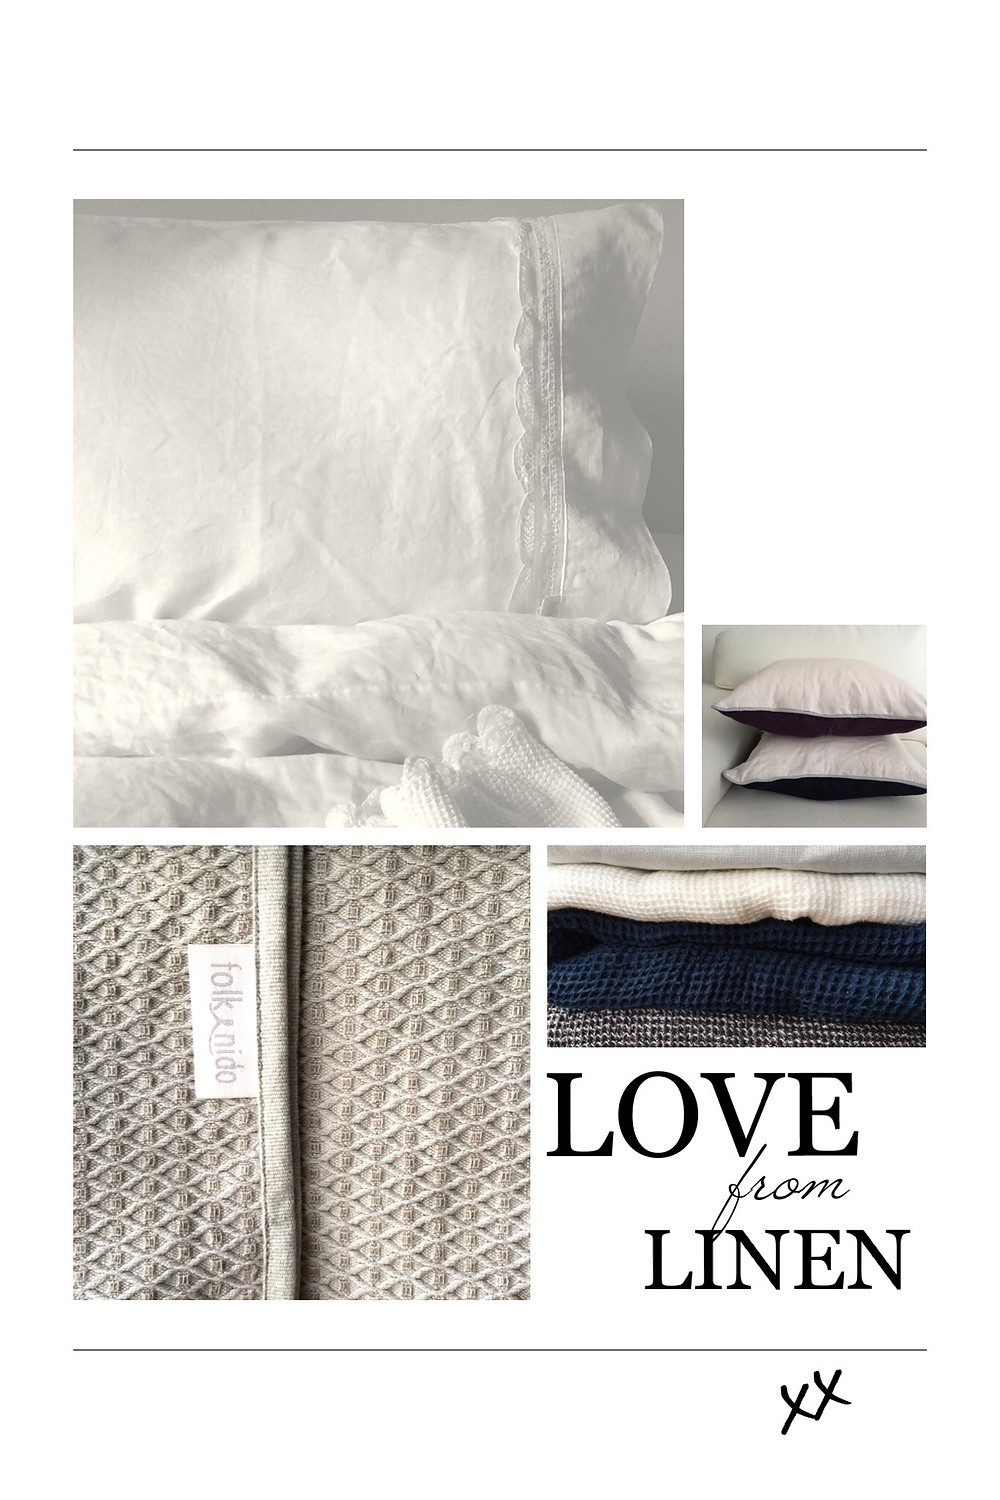 LOVE FROM LINEN GIFT GUIDE